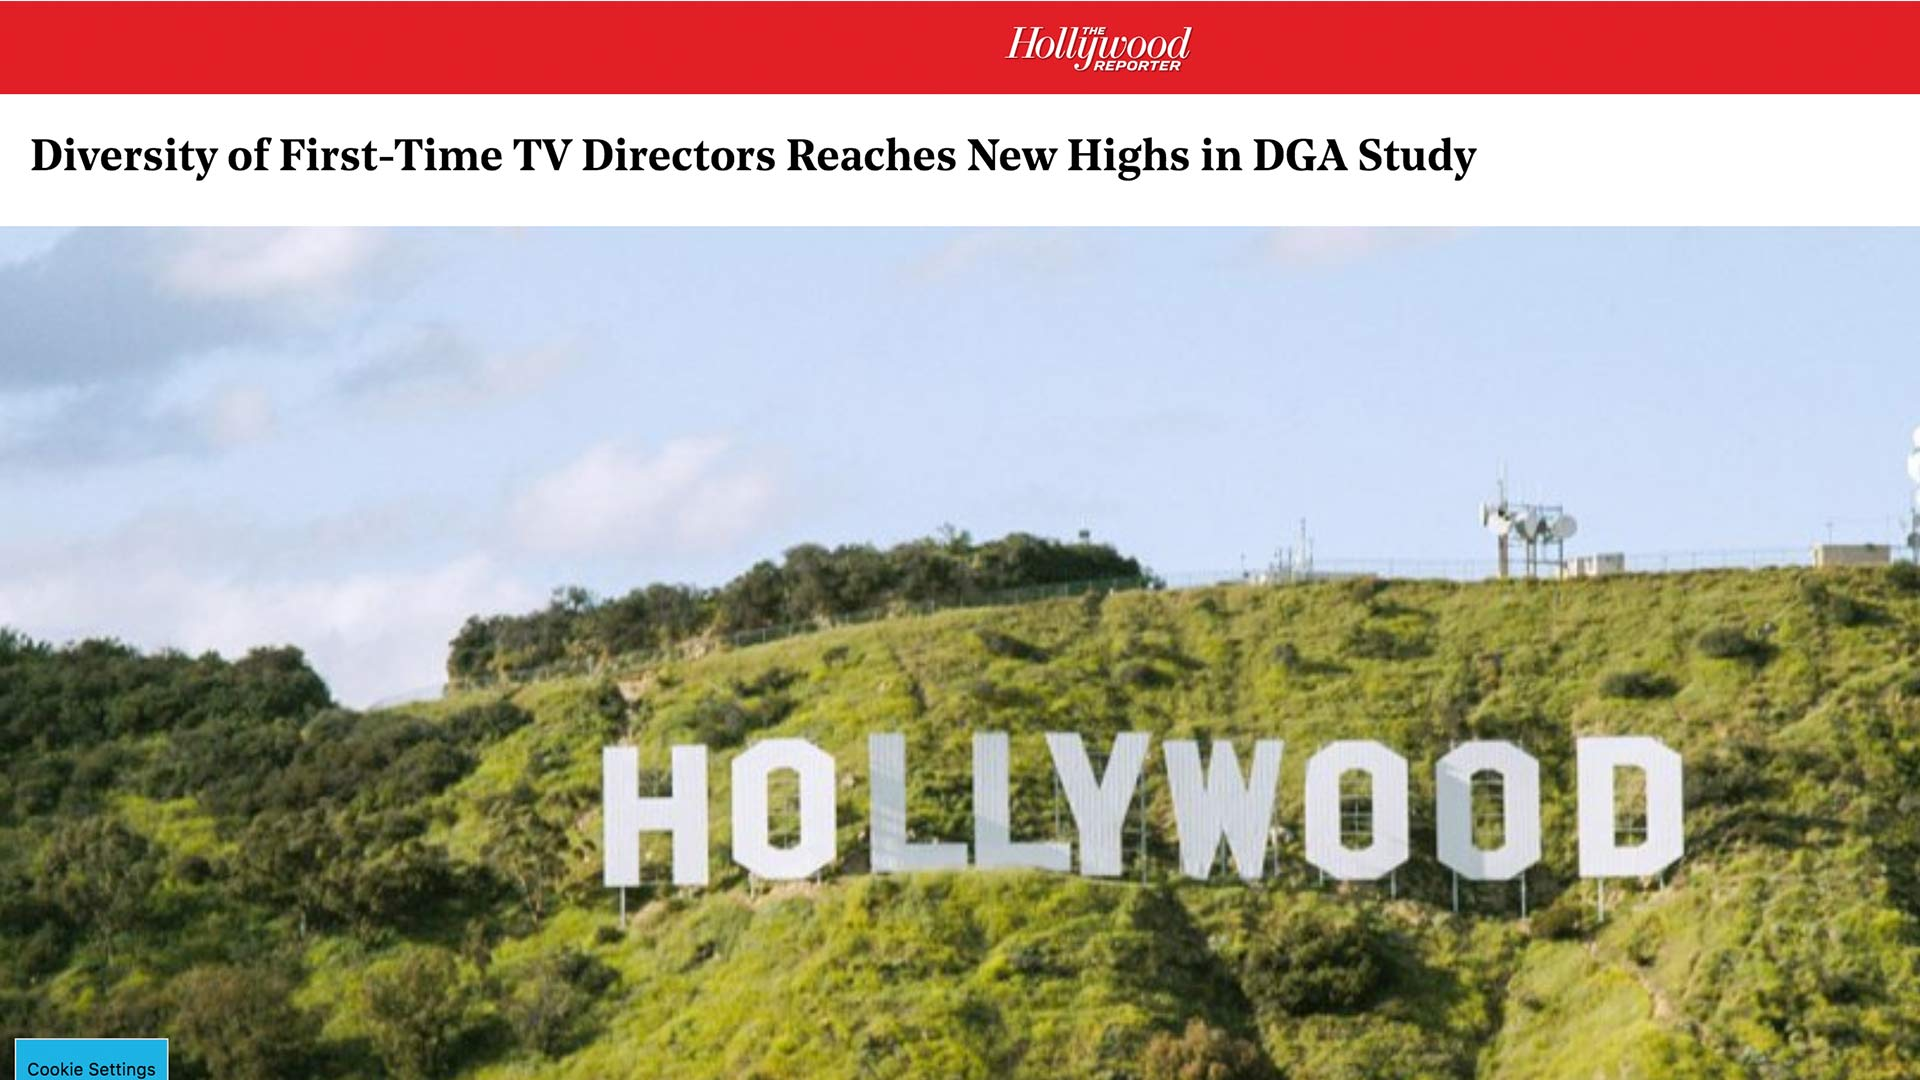 Fairness Rocks News Diversity of First-Time TV Directors Reaches New Highs in DGA Study